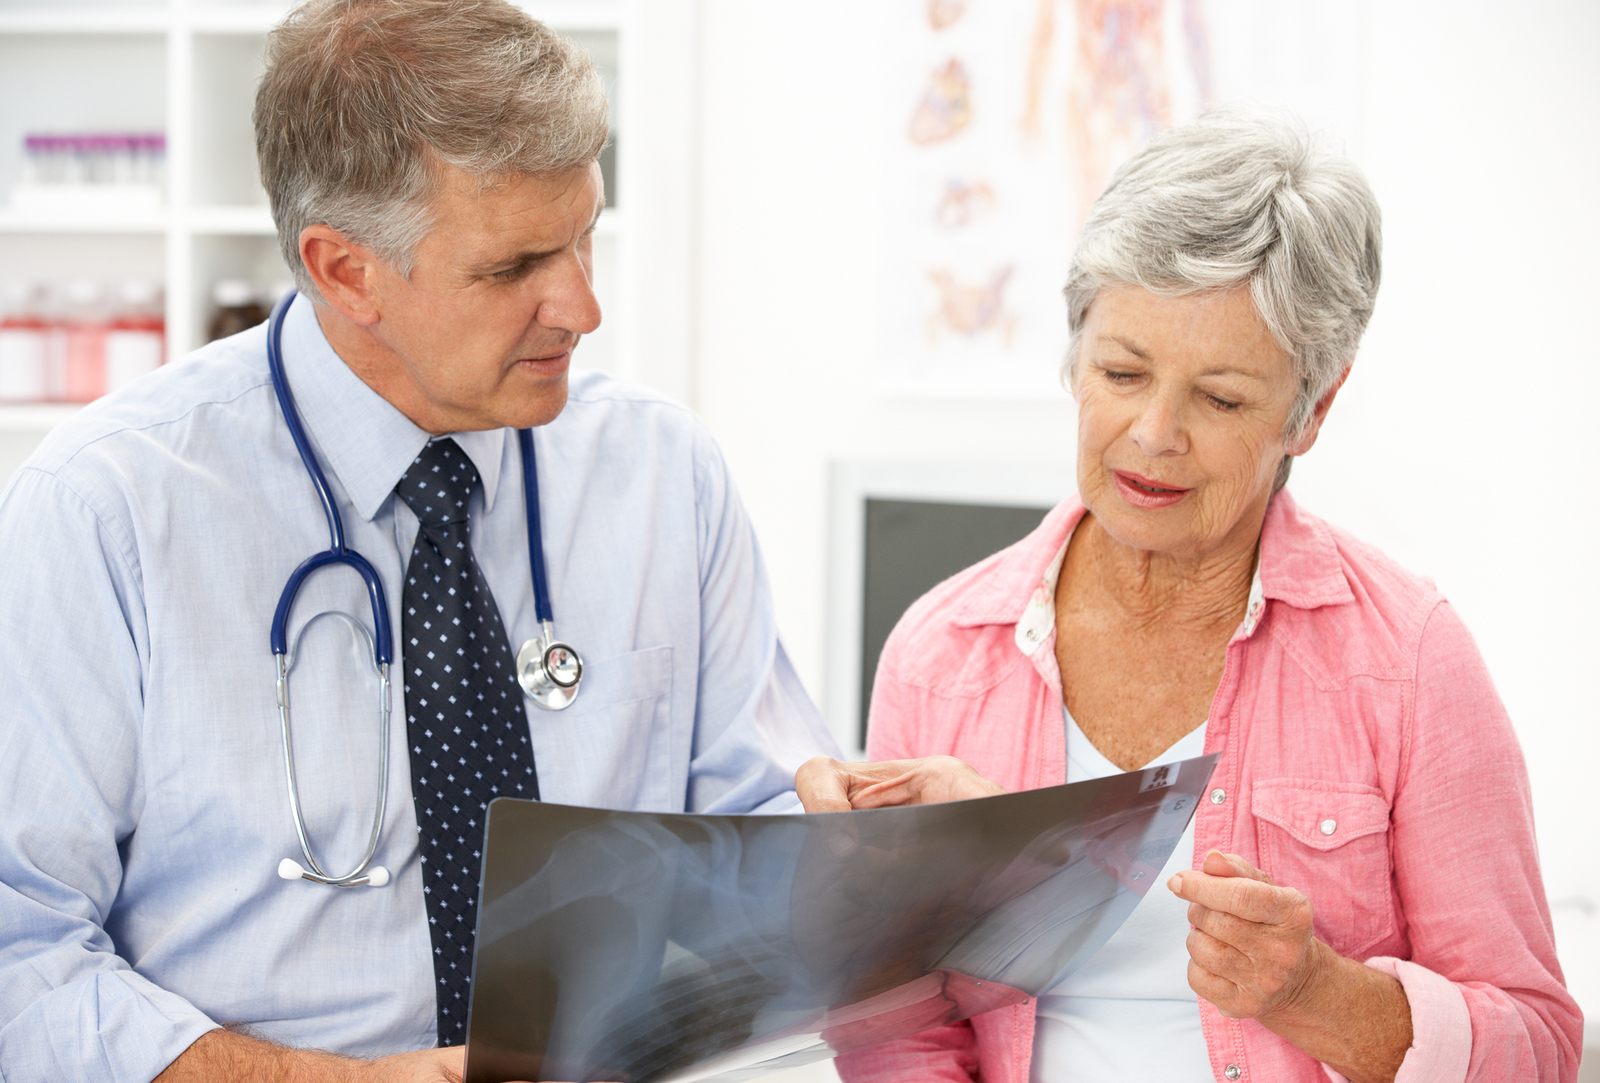 Medical Malpractice Injuries From a Delayed Diagnosis